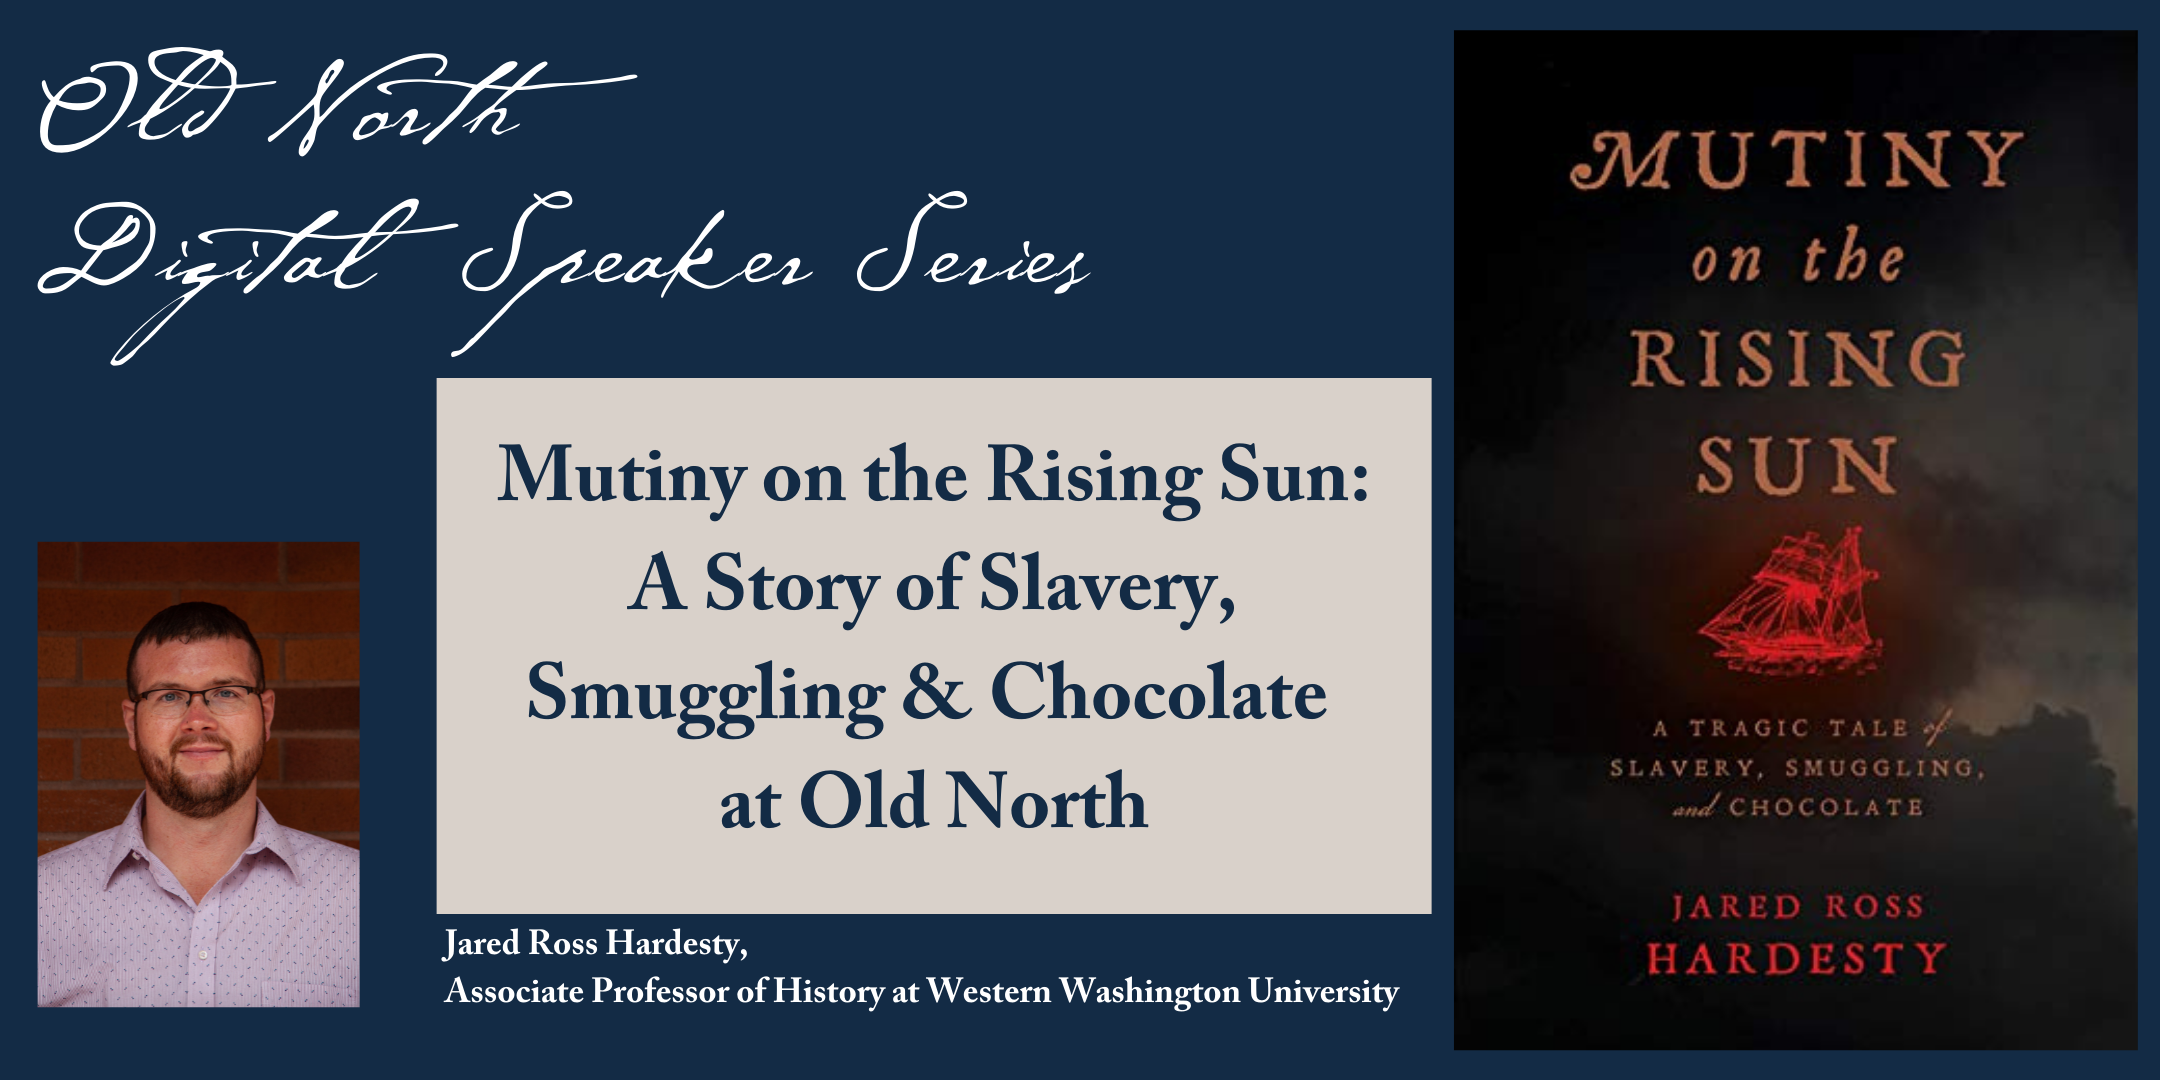 Mutiny on the Rising Sun: Slavery, Smuggling & Chocolate at Old North